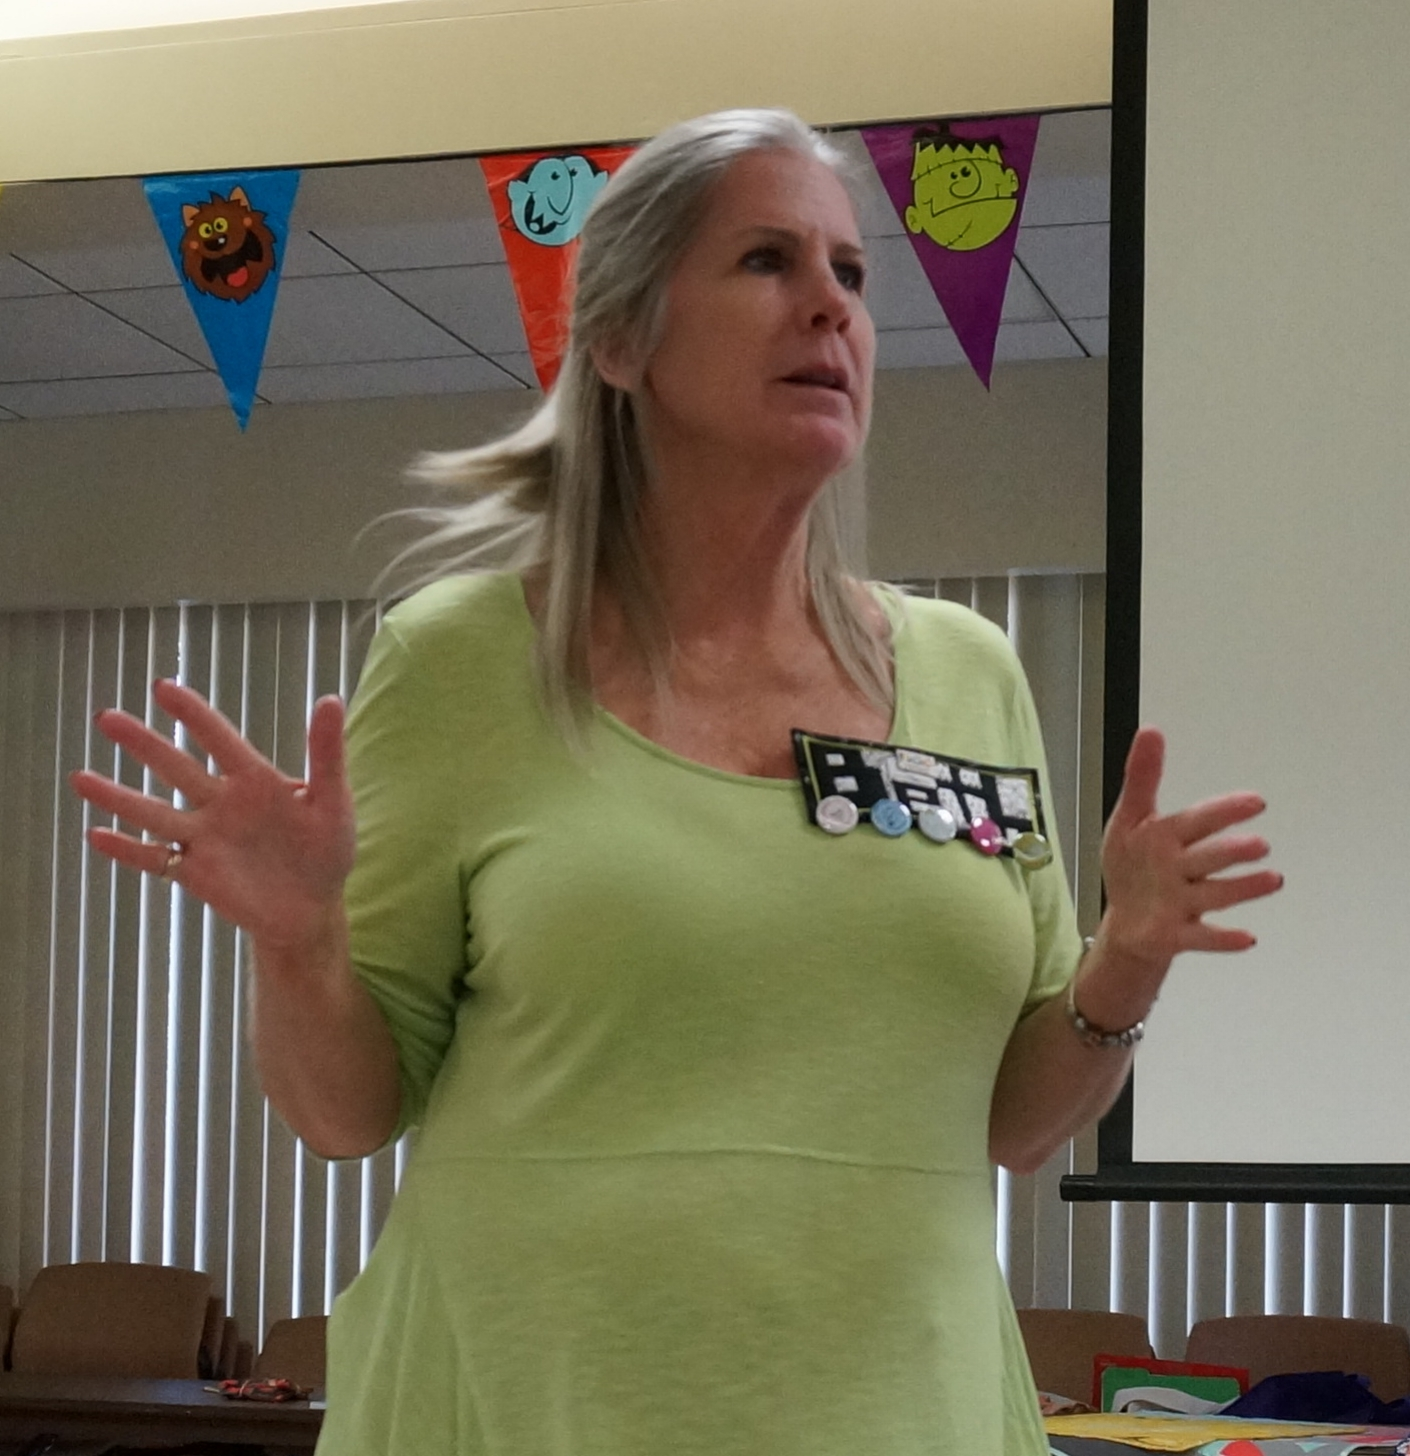 Presidential candidate Beth Schnell tells us about herself.